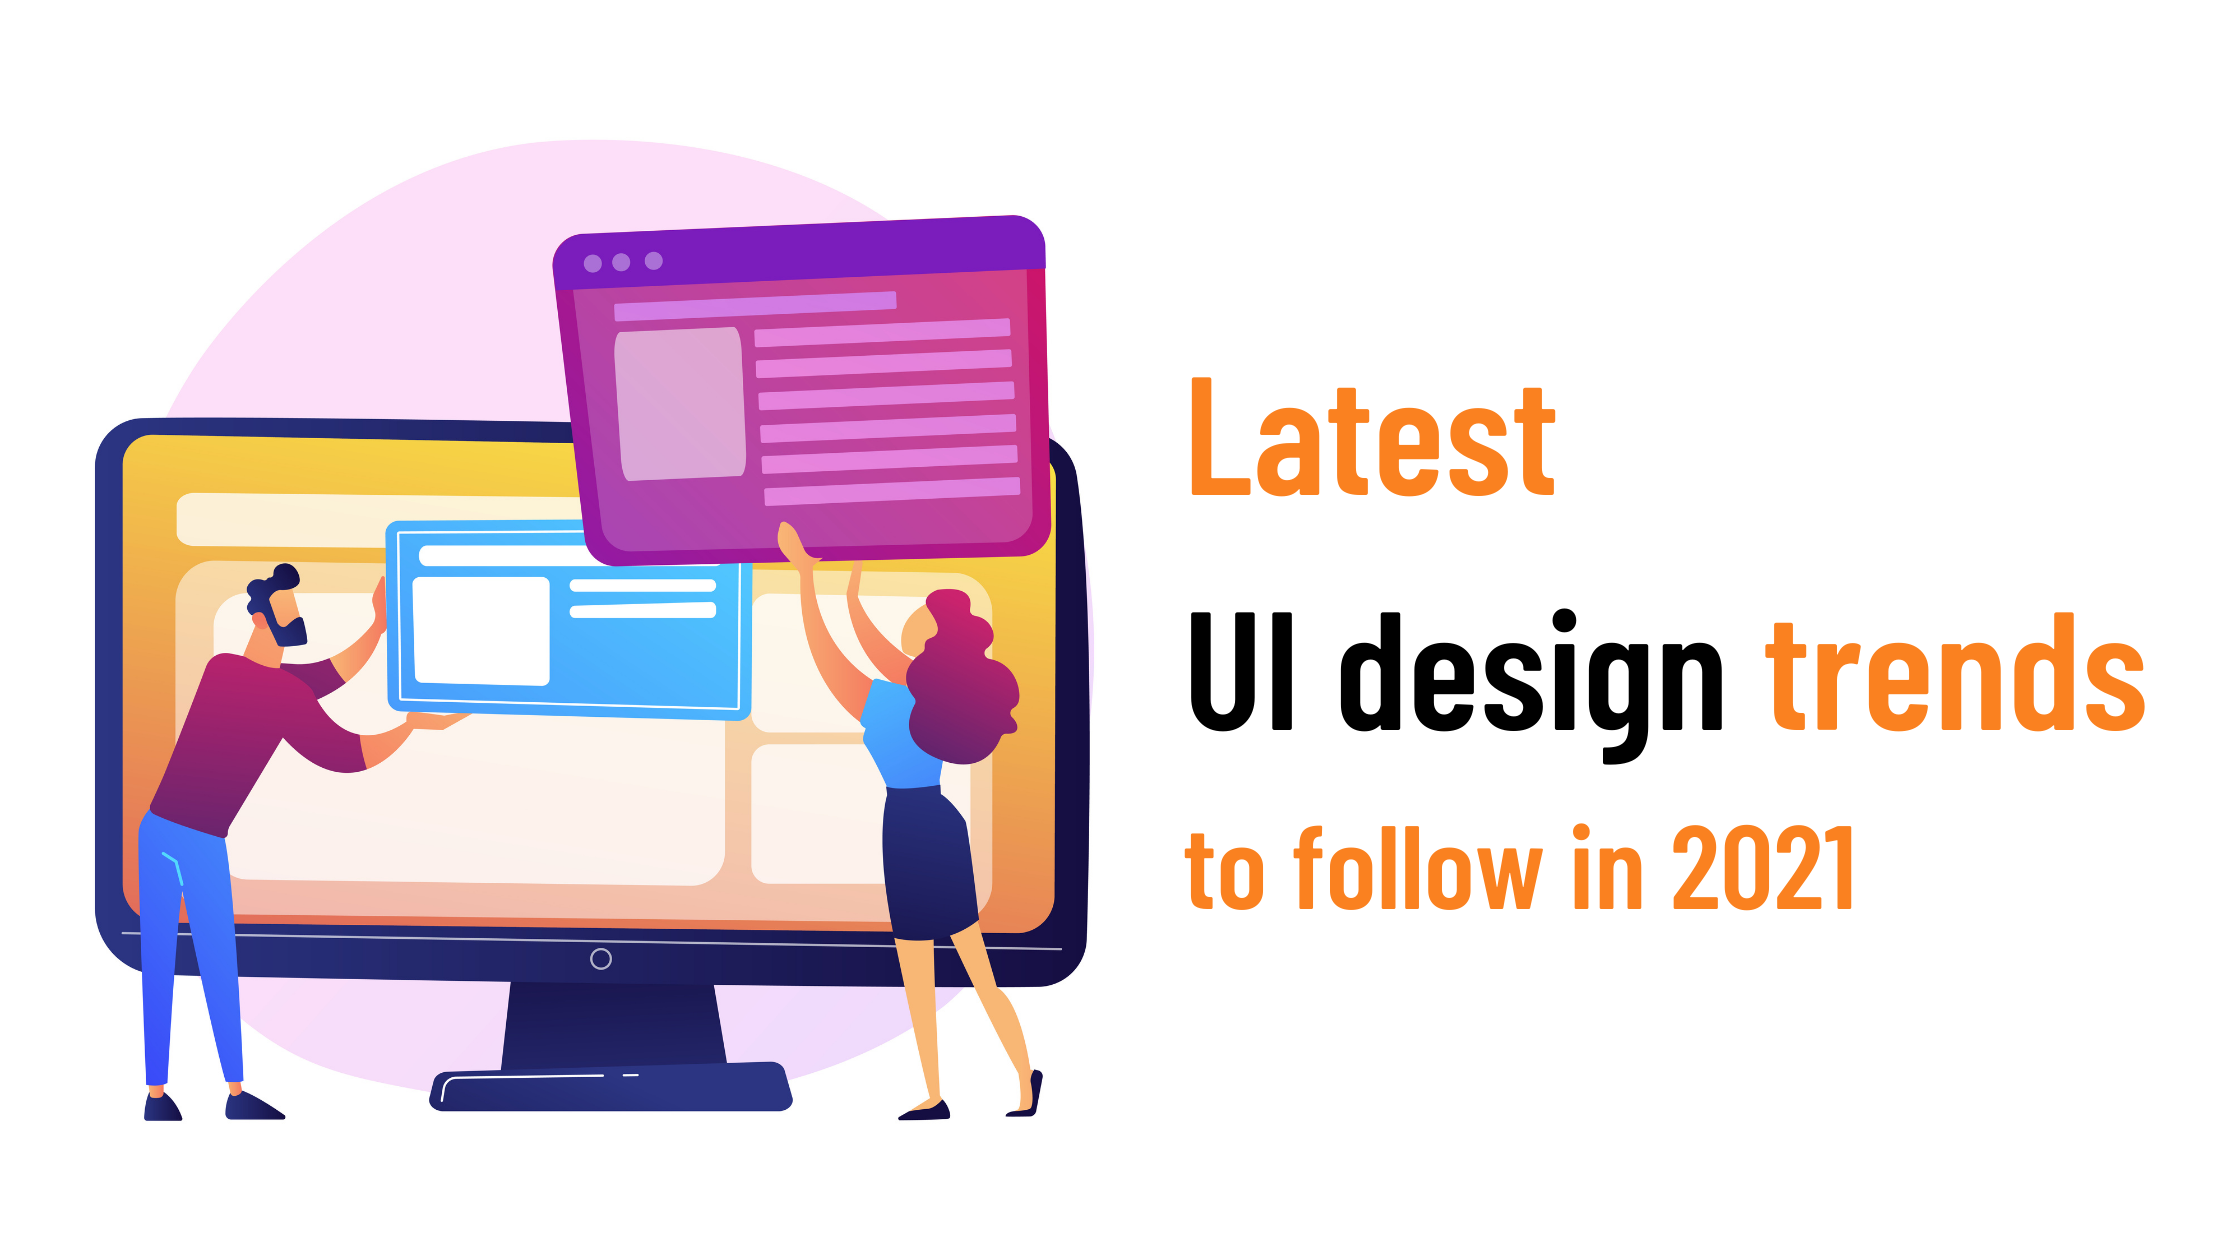 Latest UI design trends to follow in 2021